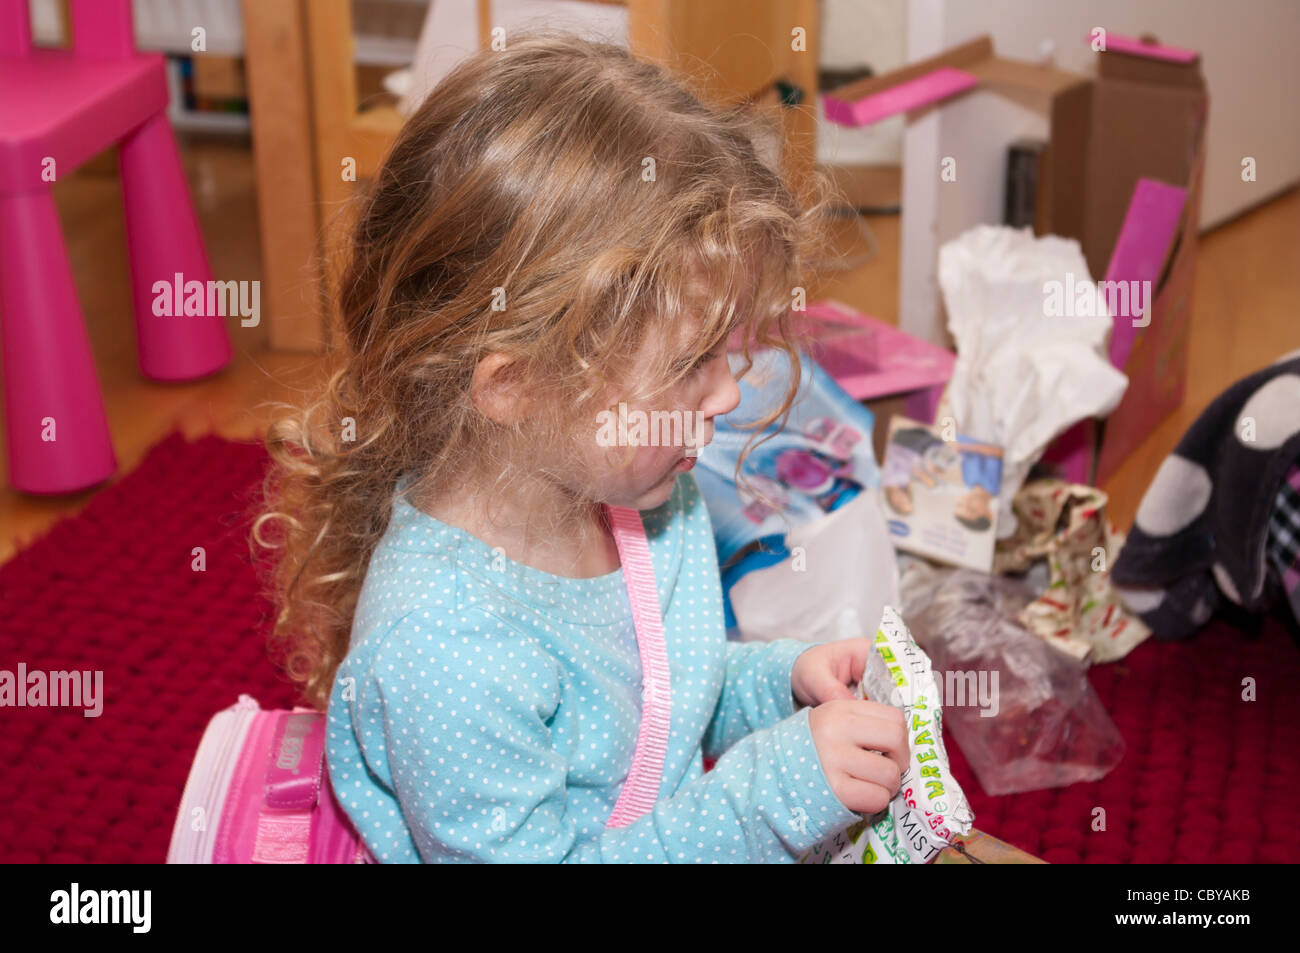 3 Year Old Child Girl Infant Toddler Opening A Xmas Christmas ...